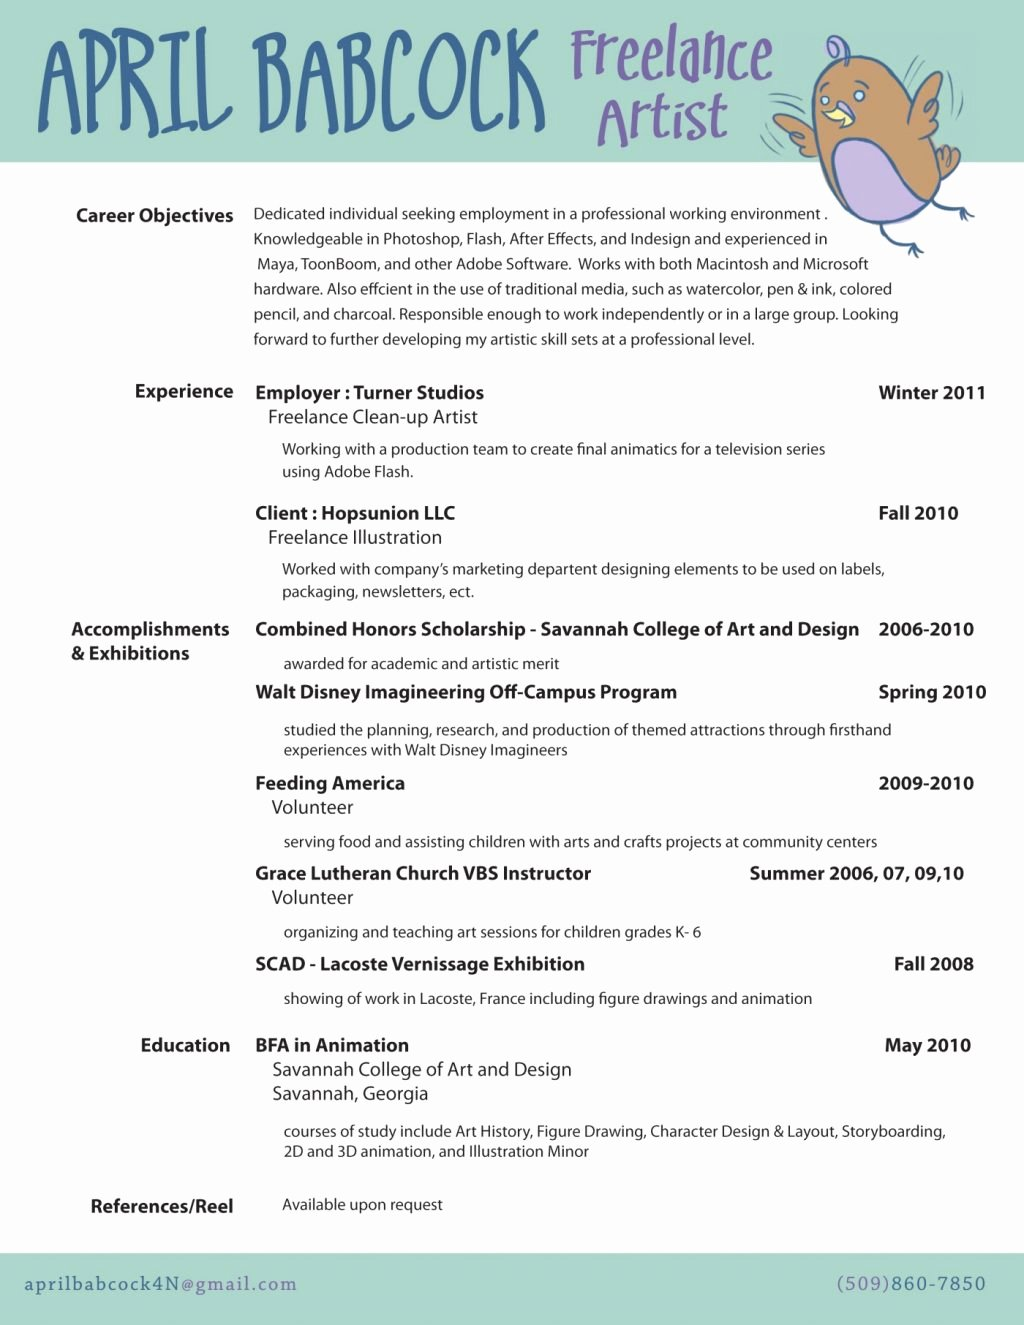 Artist Resume Template Word New Resume and Template Fabulous Artist Resume Template Word